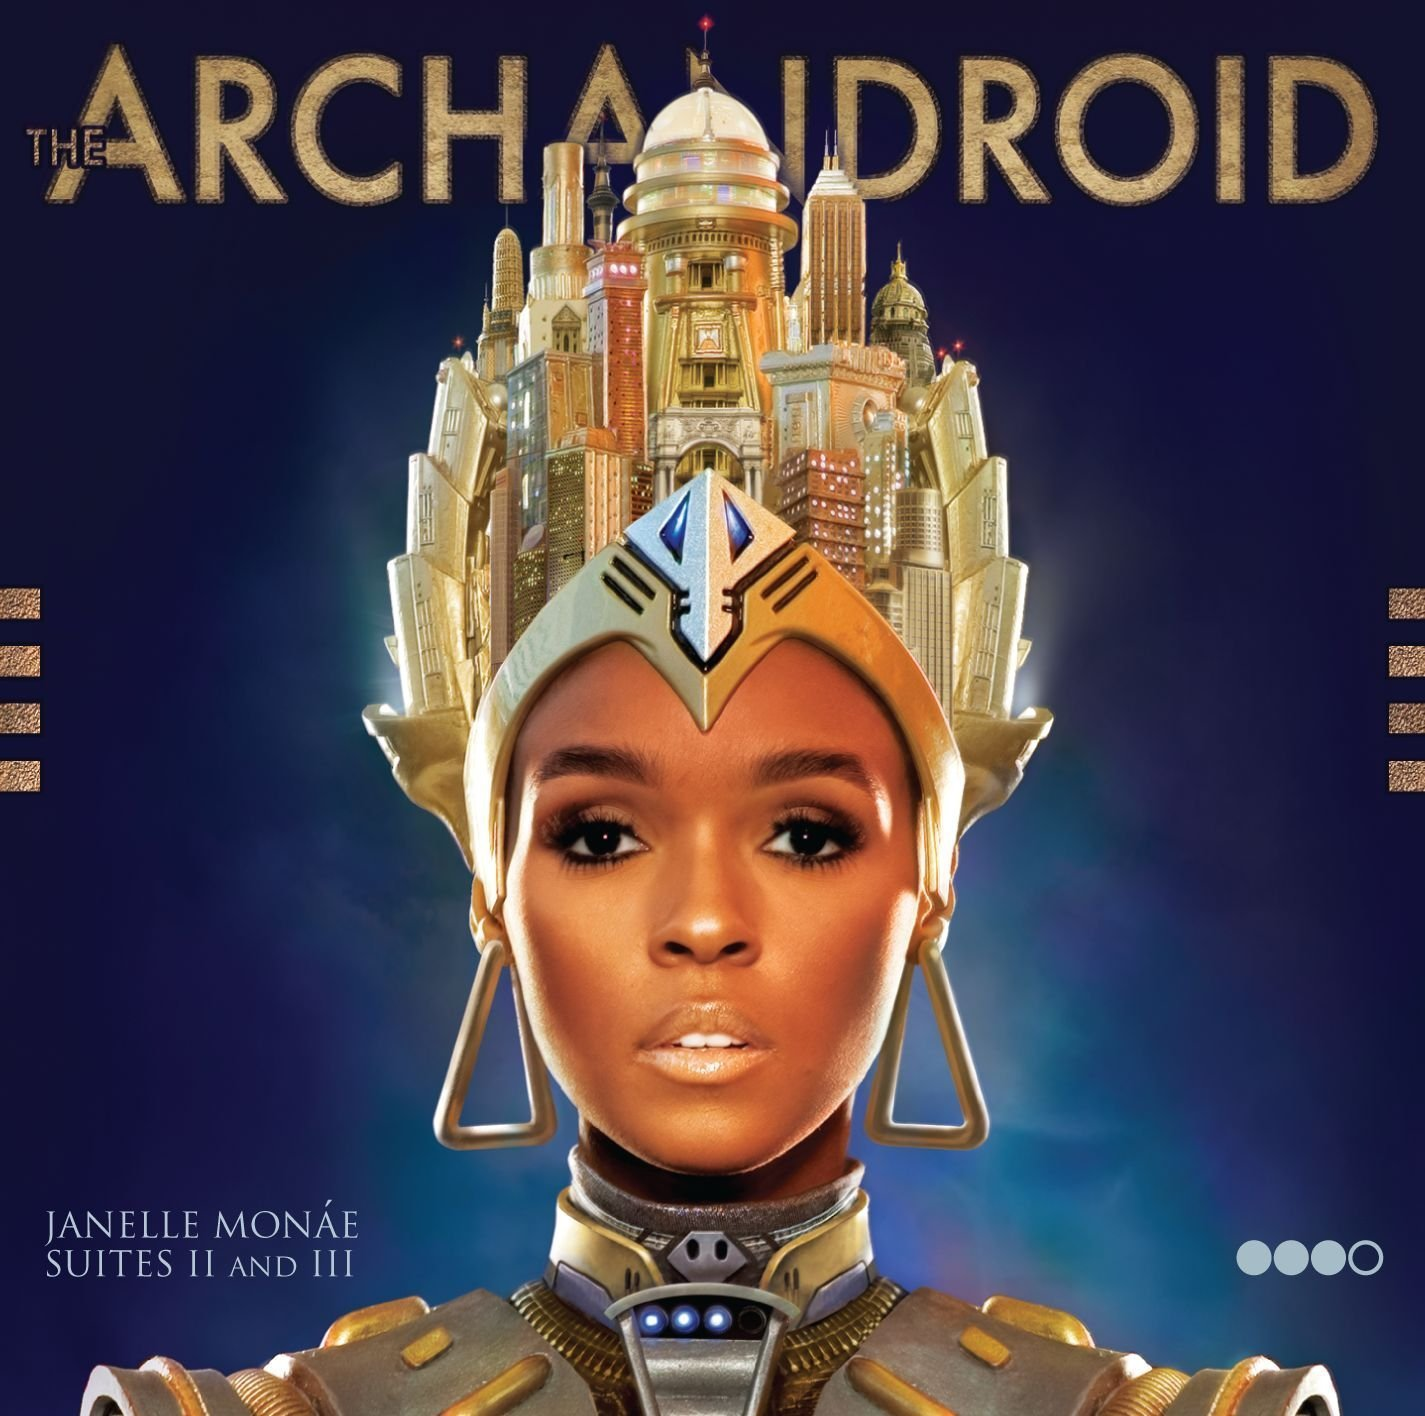 Janelle Monáe, The ArchAndroid (Suites II and III of IV)